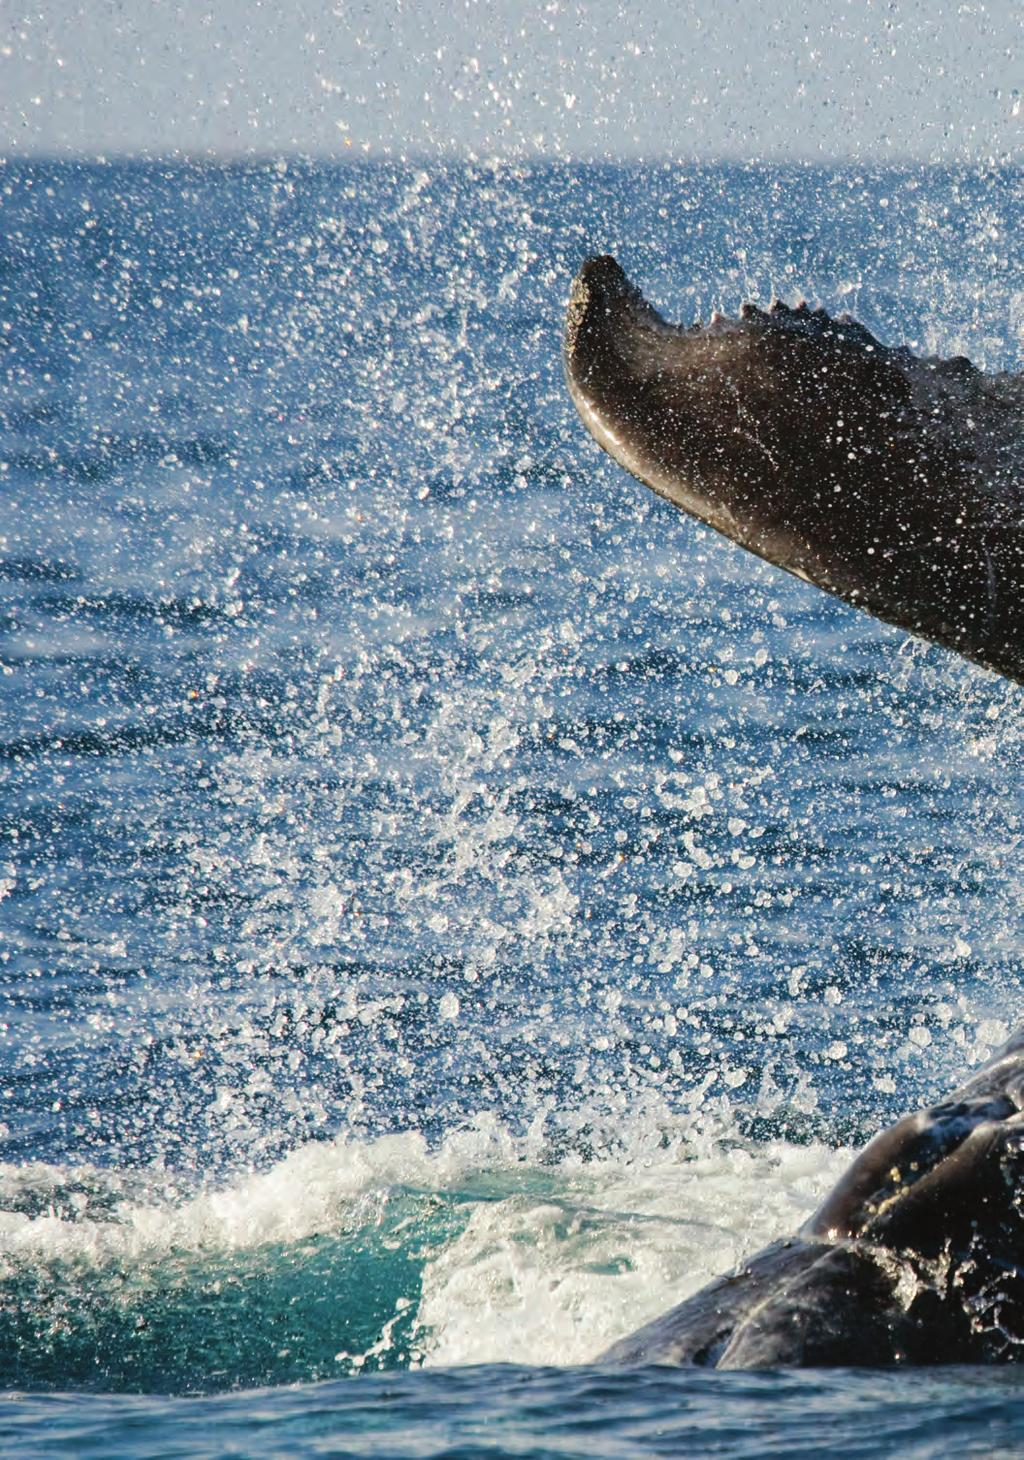 Dana Point is fortunate to have whales year-round, and the highest concentration of endangered Blue